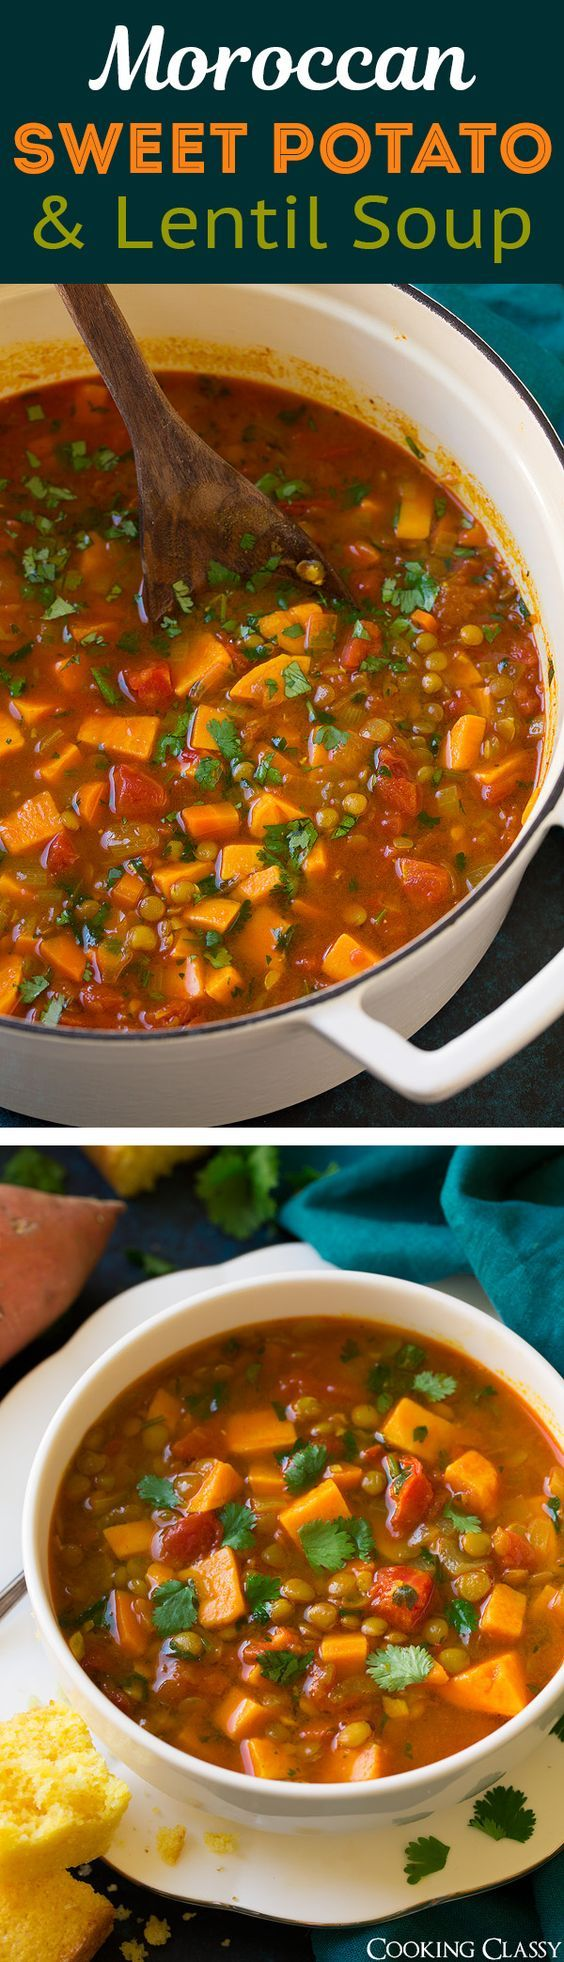 Moroccan Sweet Potato and Lentil Soup - Seriously flavorful and totally delicious ! The perfect way to use up sweet potatoes.